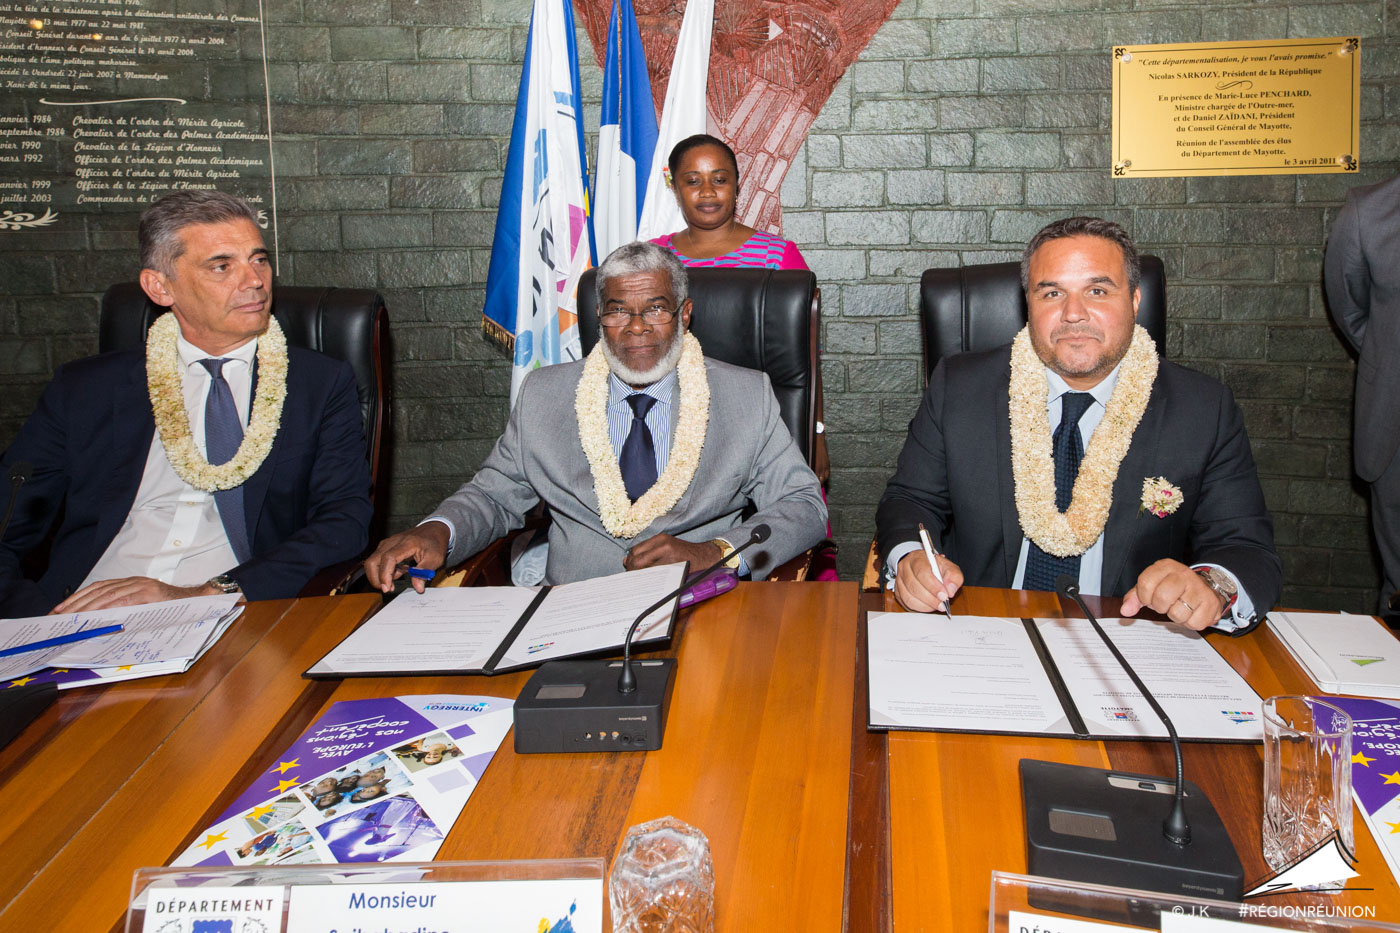 Signature de déclaration d'intention entre Mayotte et La Réunion